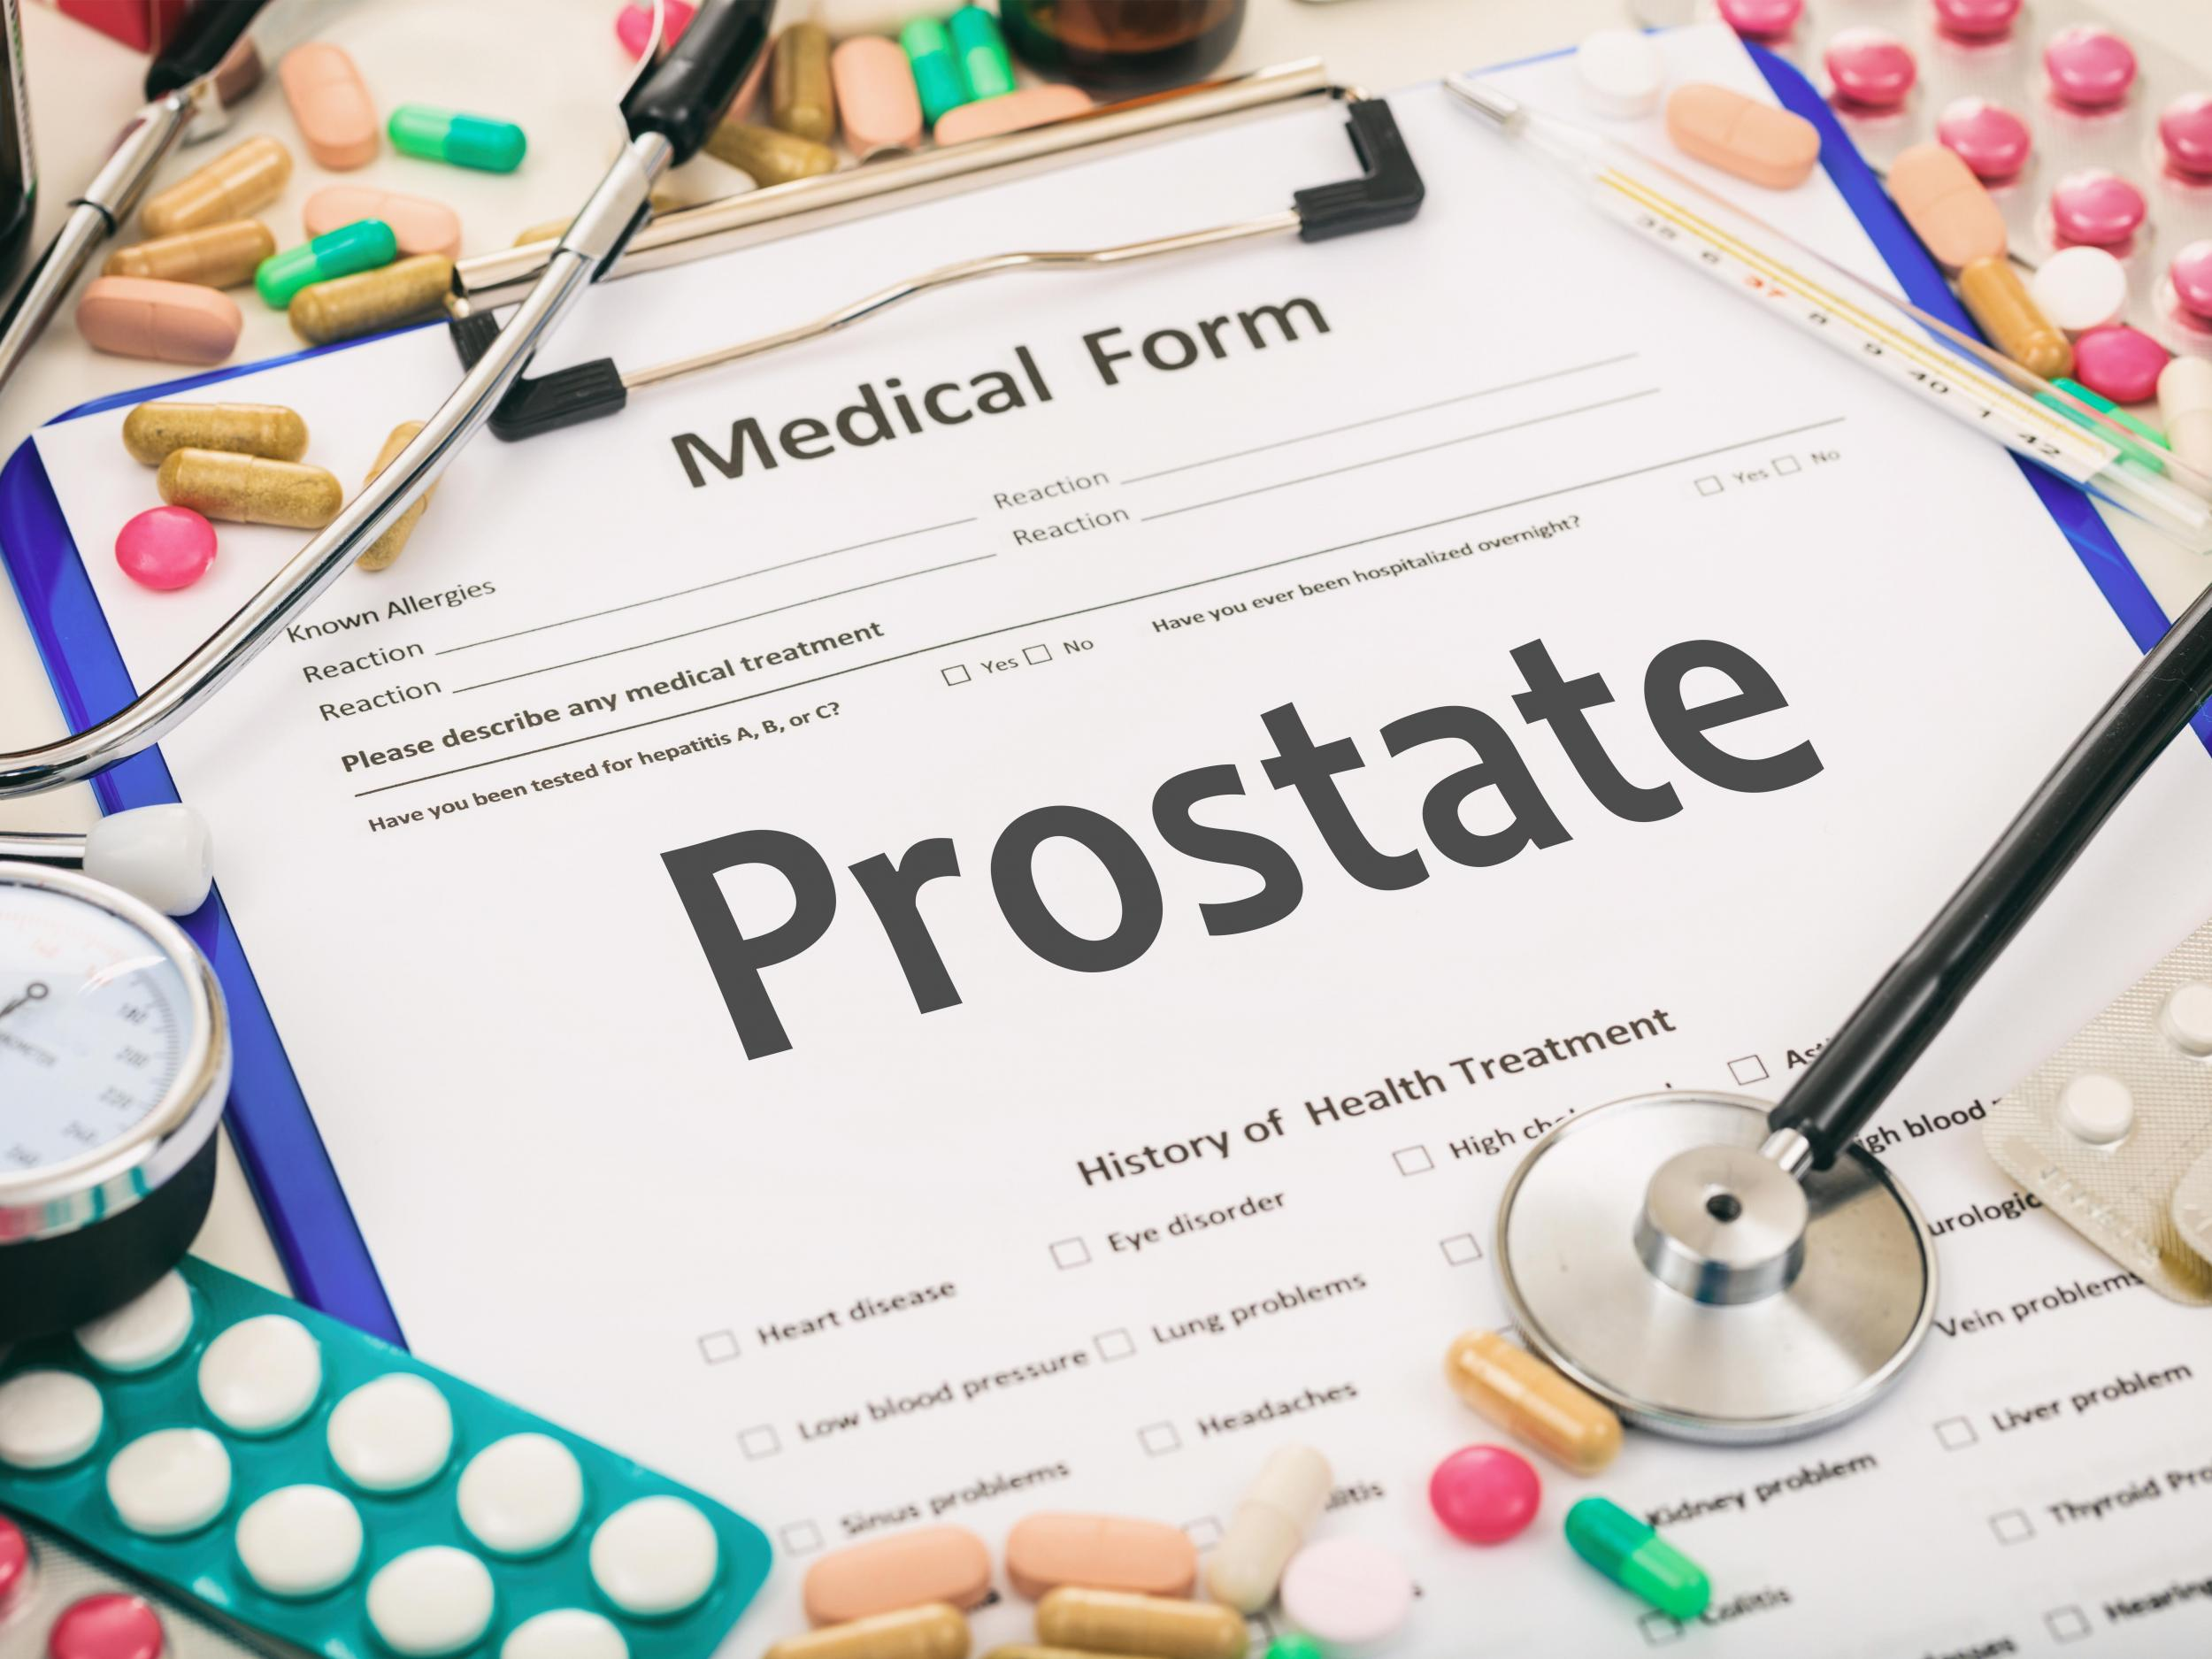 Prostate cancer: The two drugs that can radically delay the spread of the disease